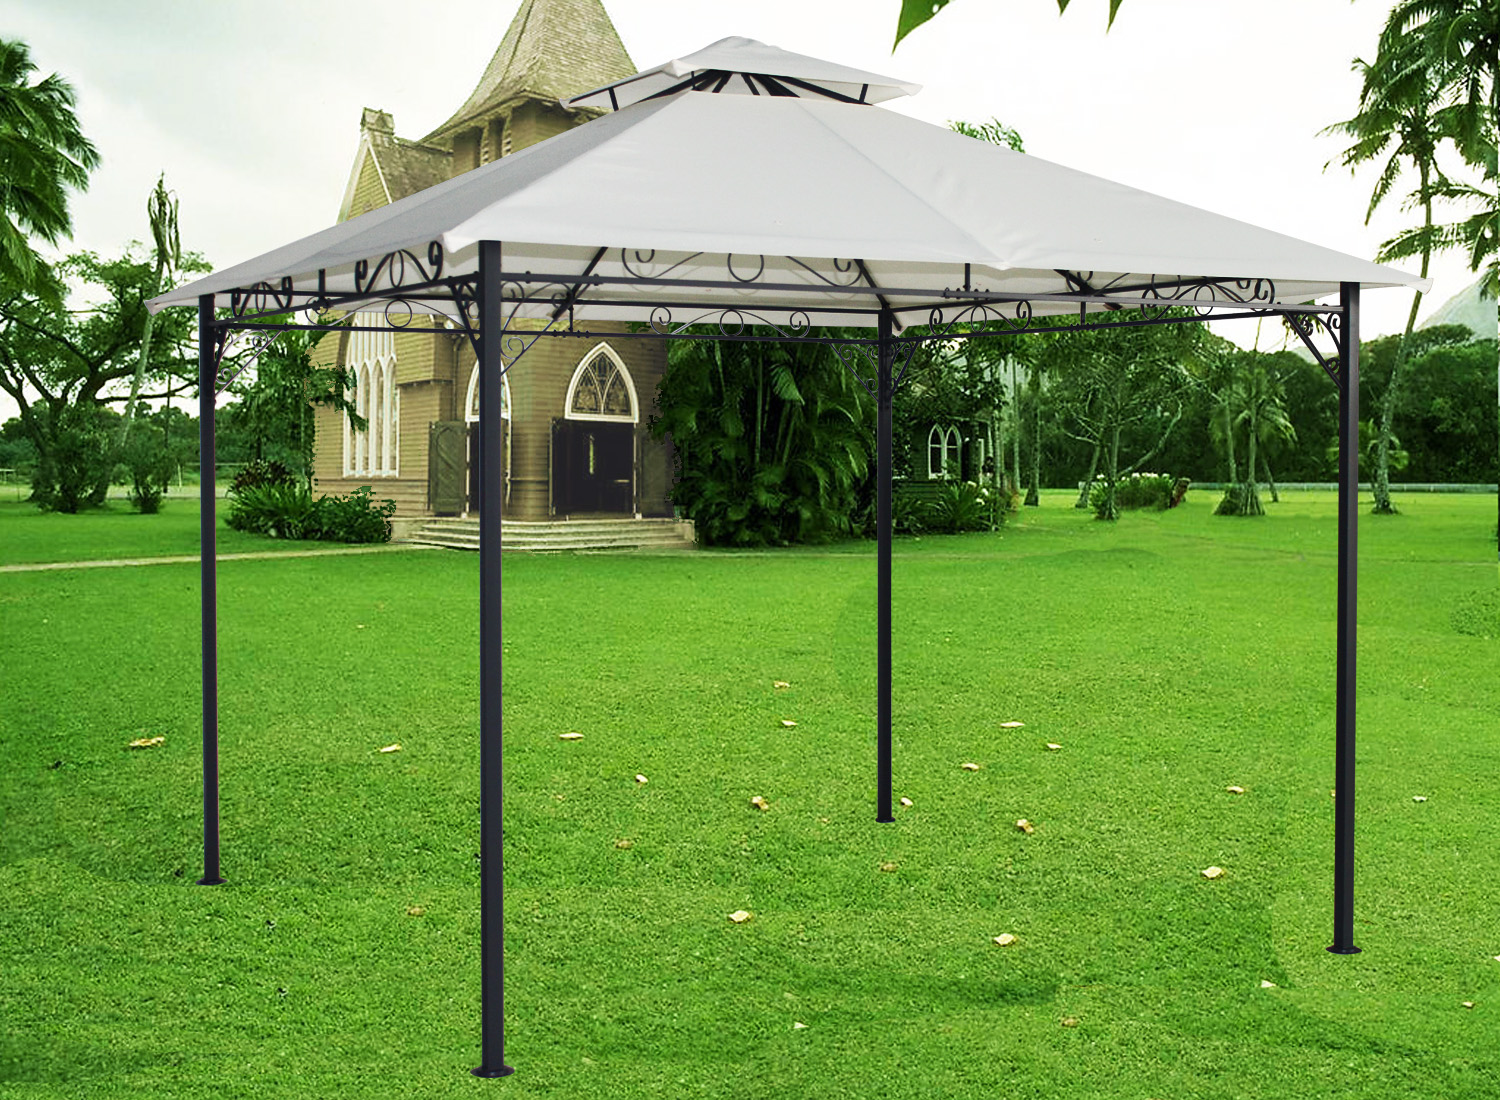 3x3m metal pavilion gazebo awning canopy sun shade shelter. Black Bedroom Furniture Sets. Home Design Ideas